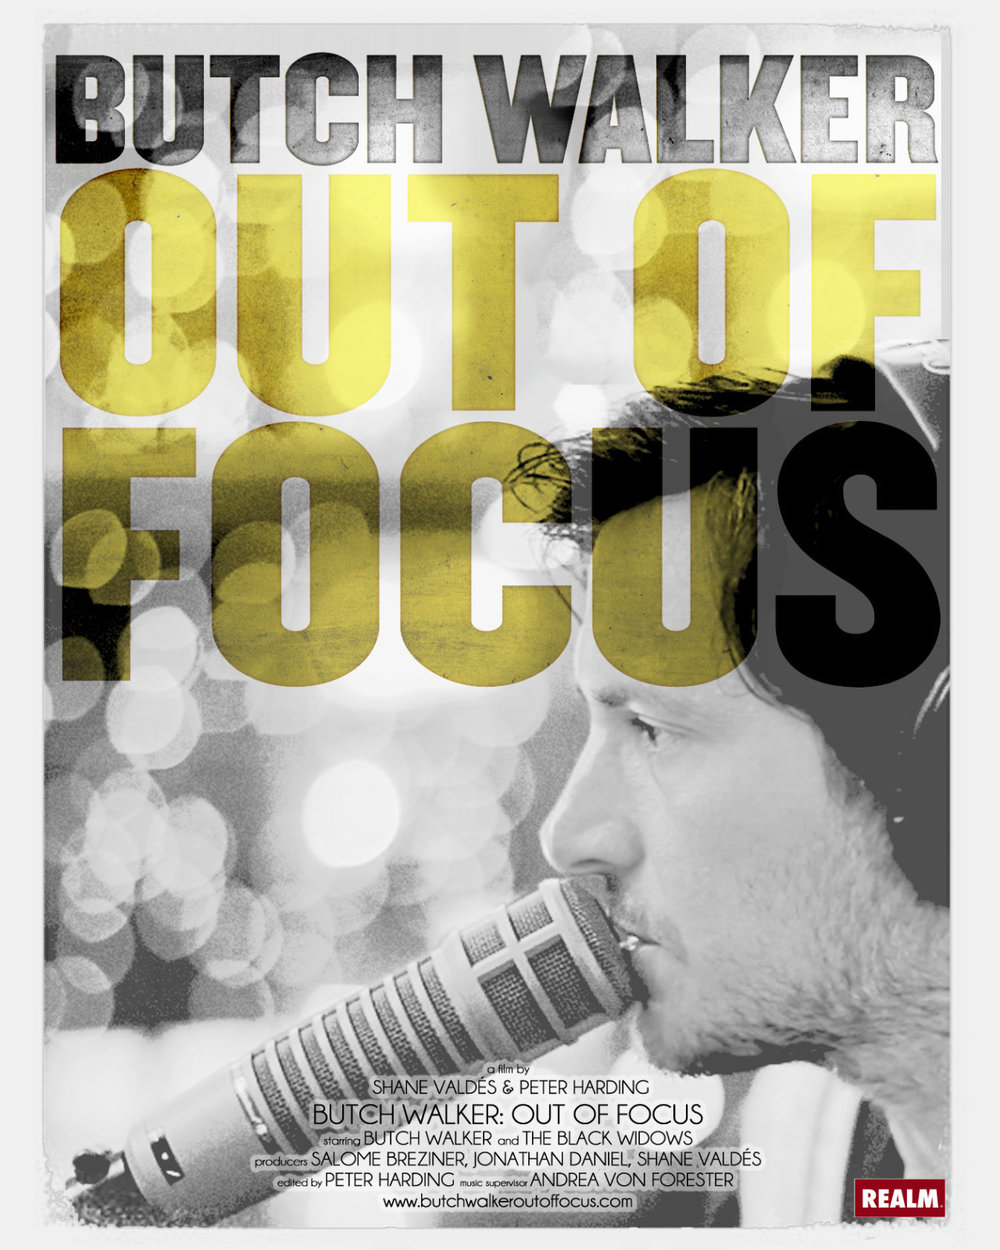 """If you're a fan of good music, then you owe it to yourself to check out Butch Walker and his new film,Out of Focus. butchwalker: The response to """"Out of Focus"""" has been great so far! Thanks to everyone who has checked it out. If you haven't yet, grab it on iTunes."""